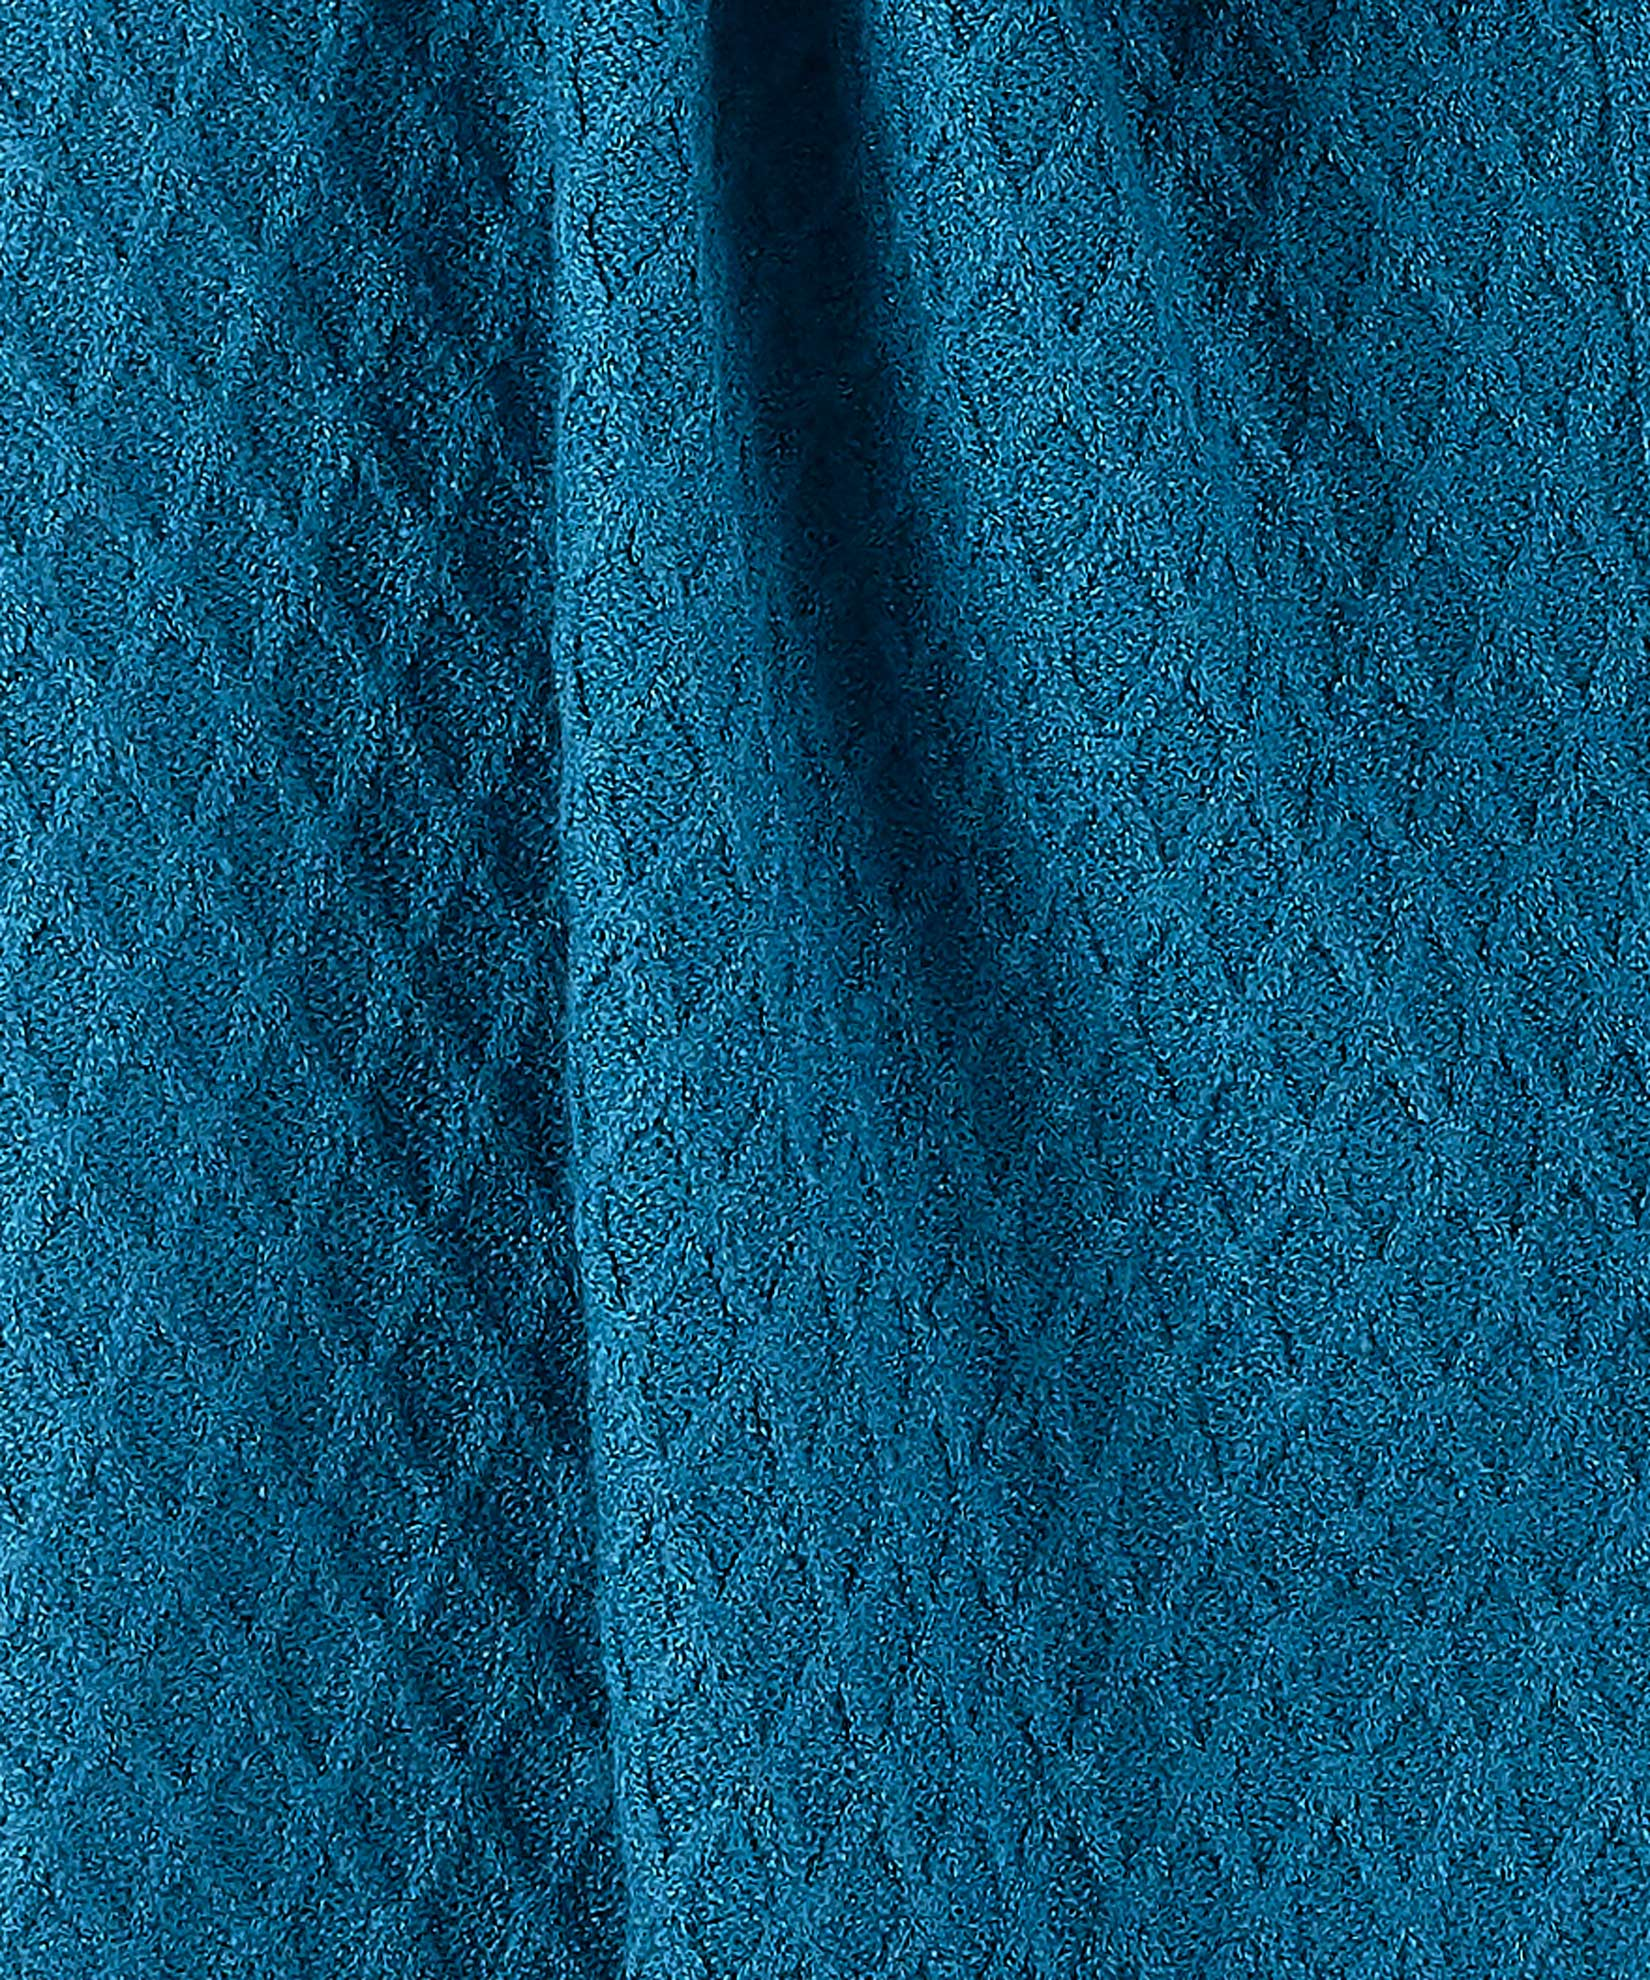 Teal - Diamond Textured Muffler